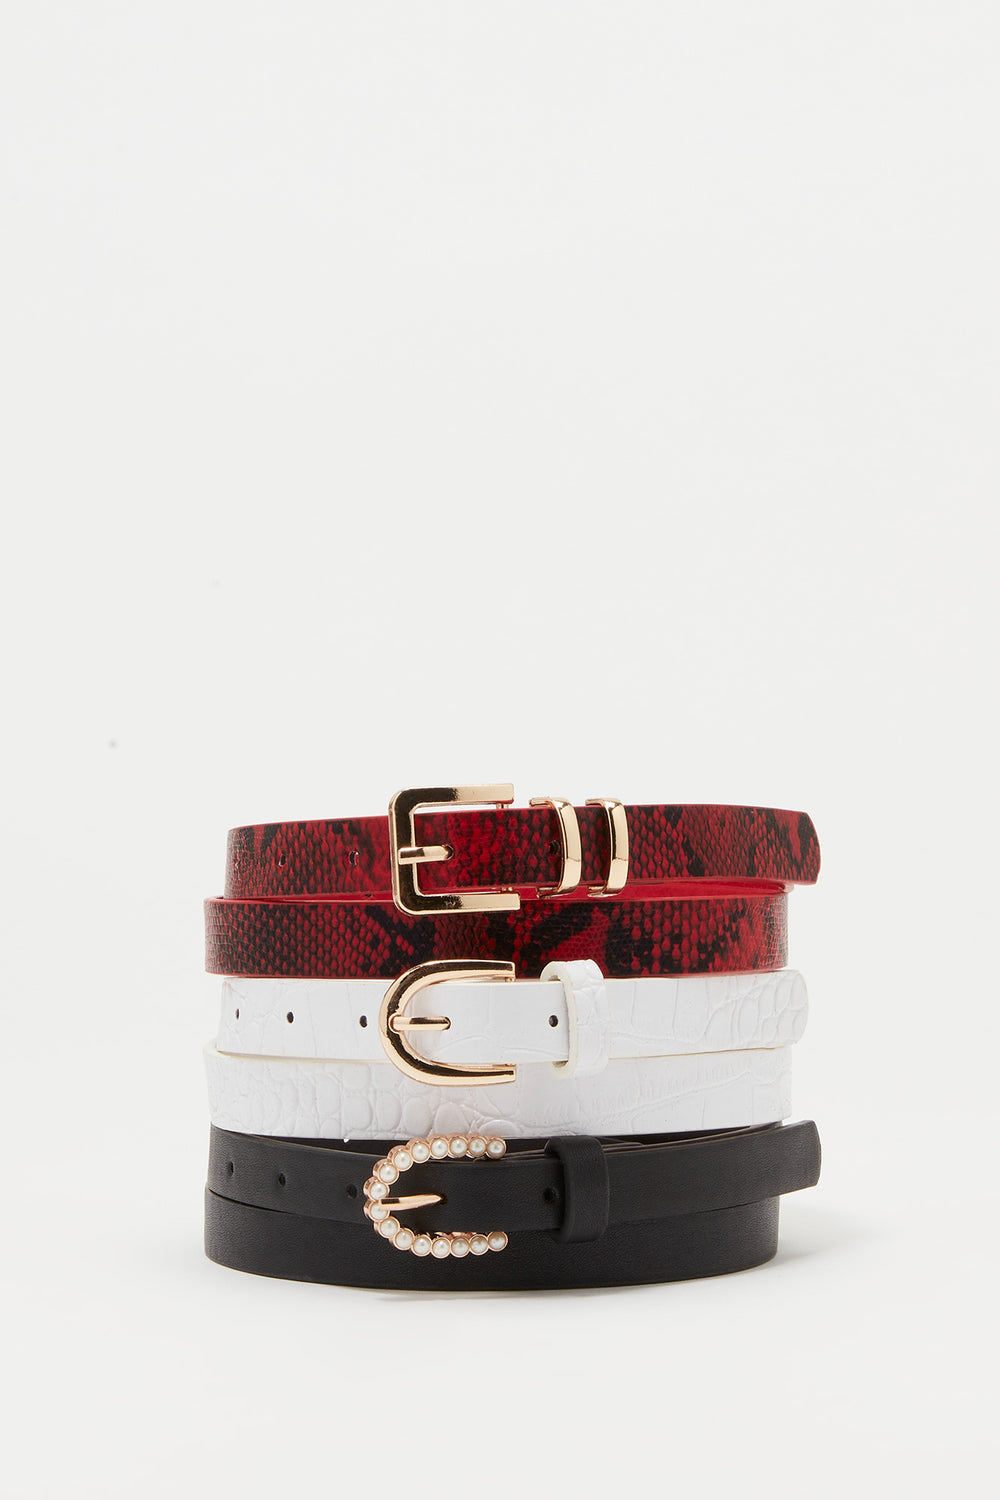 Assorted Skinny Belts (3 PC) White